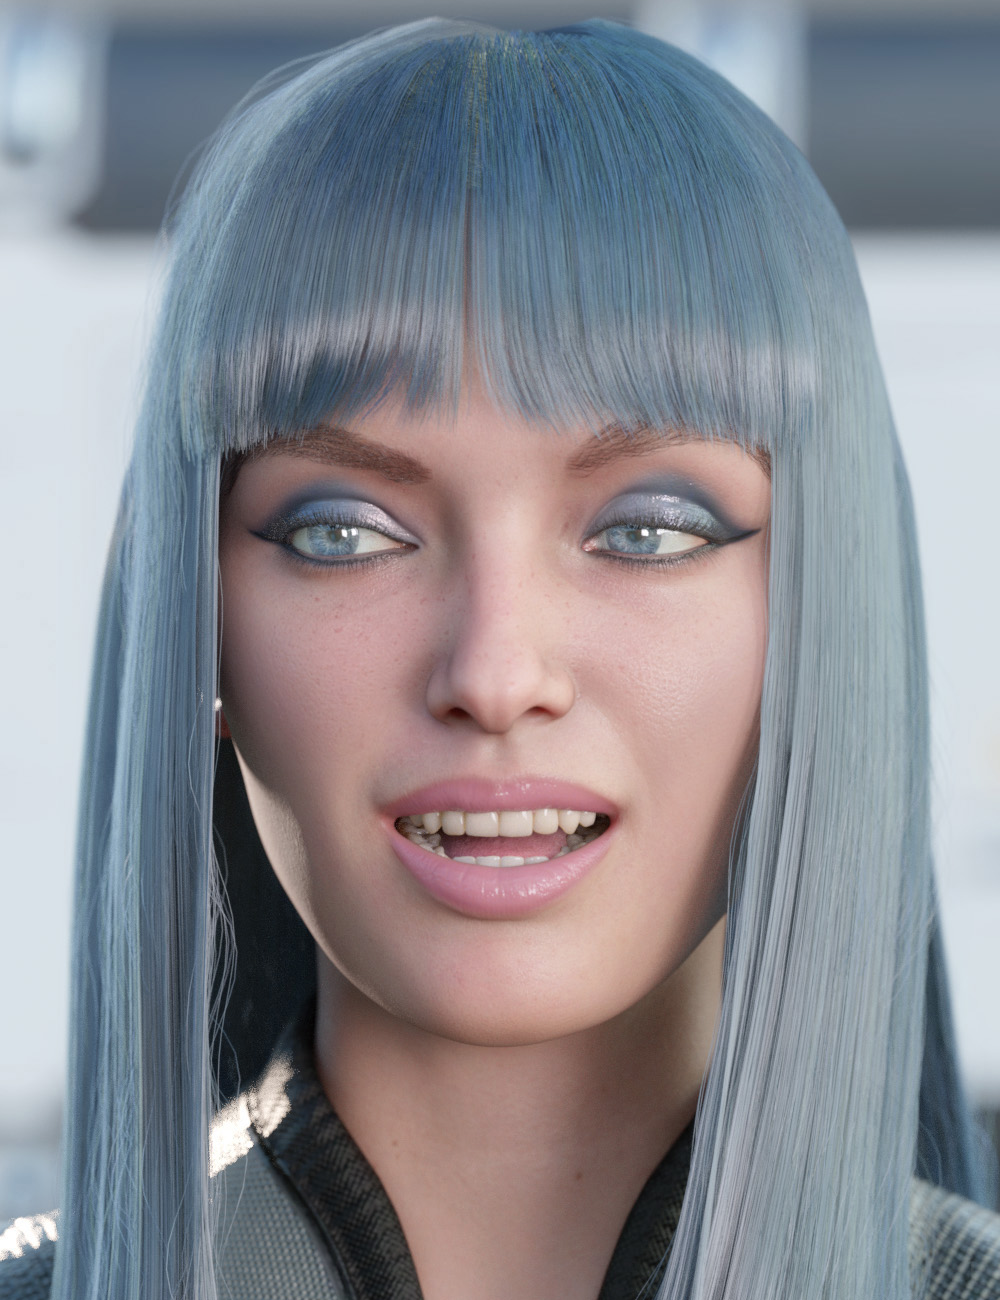 Ultimate PBR Shader Makeup for Genesis 8.1 Females by: PhilW, 3D Models by Daz 3D